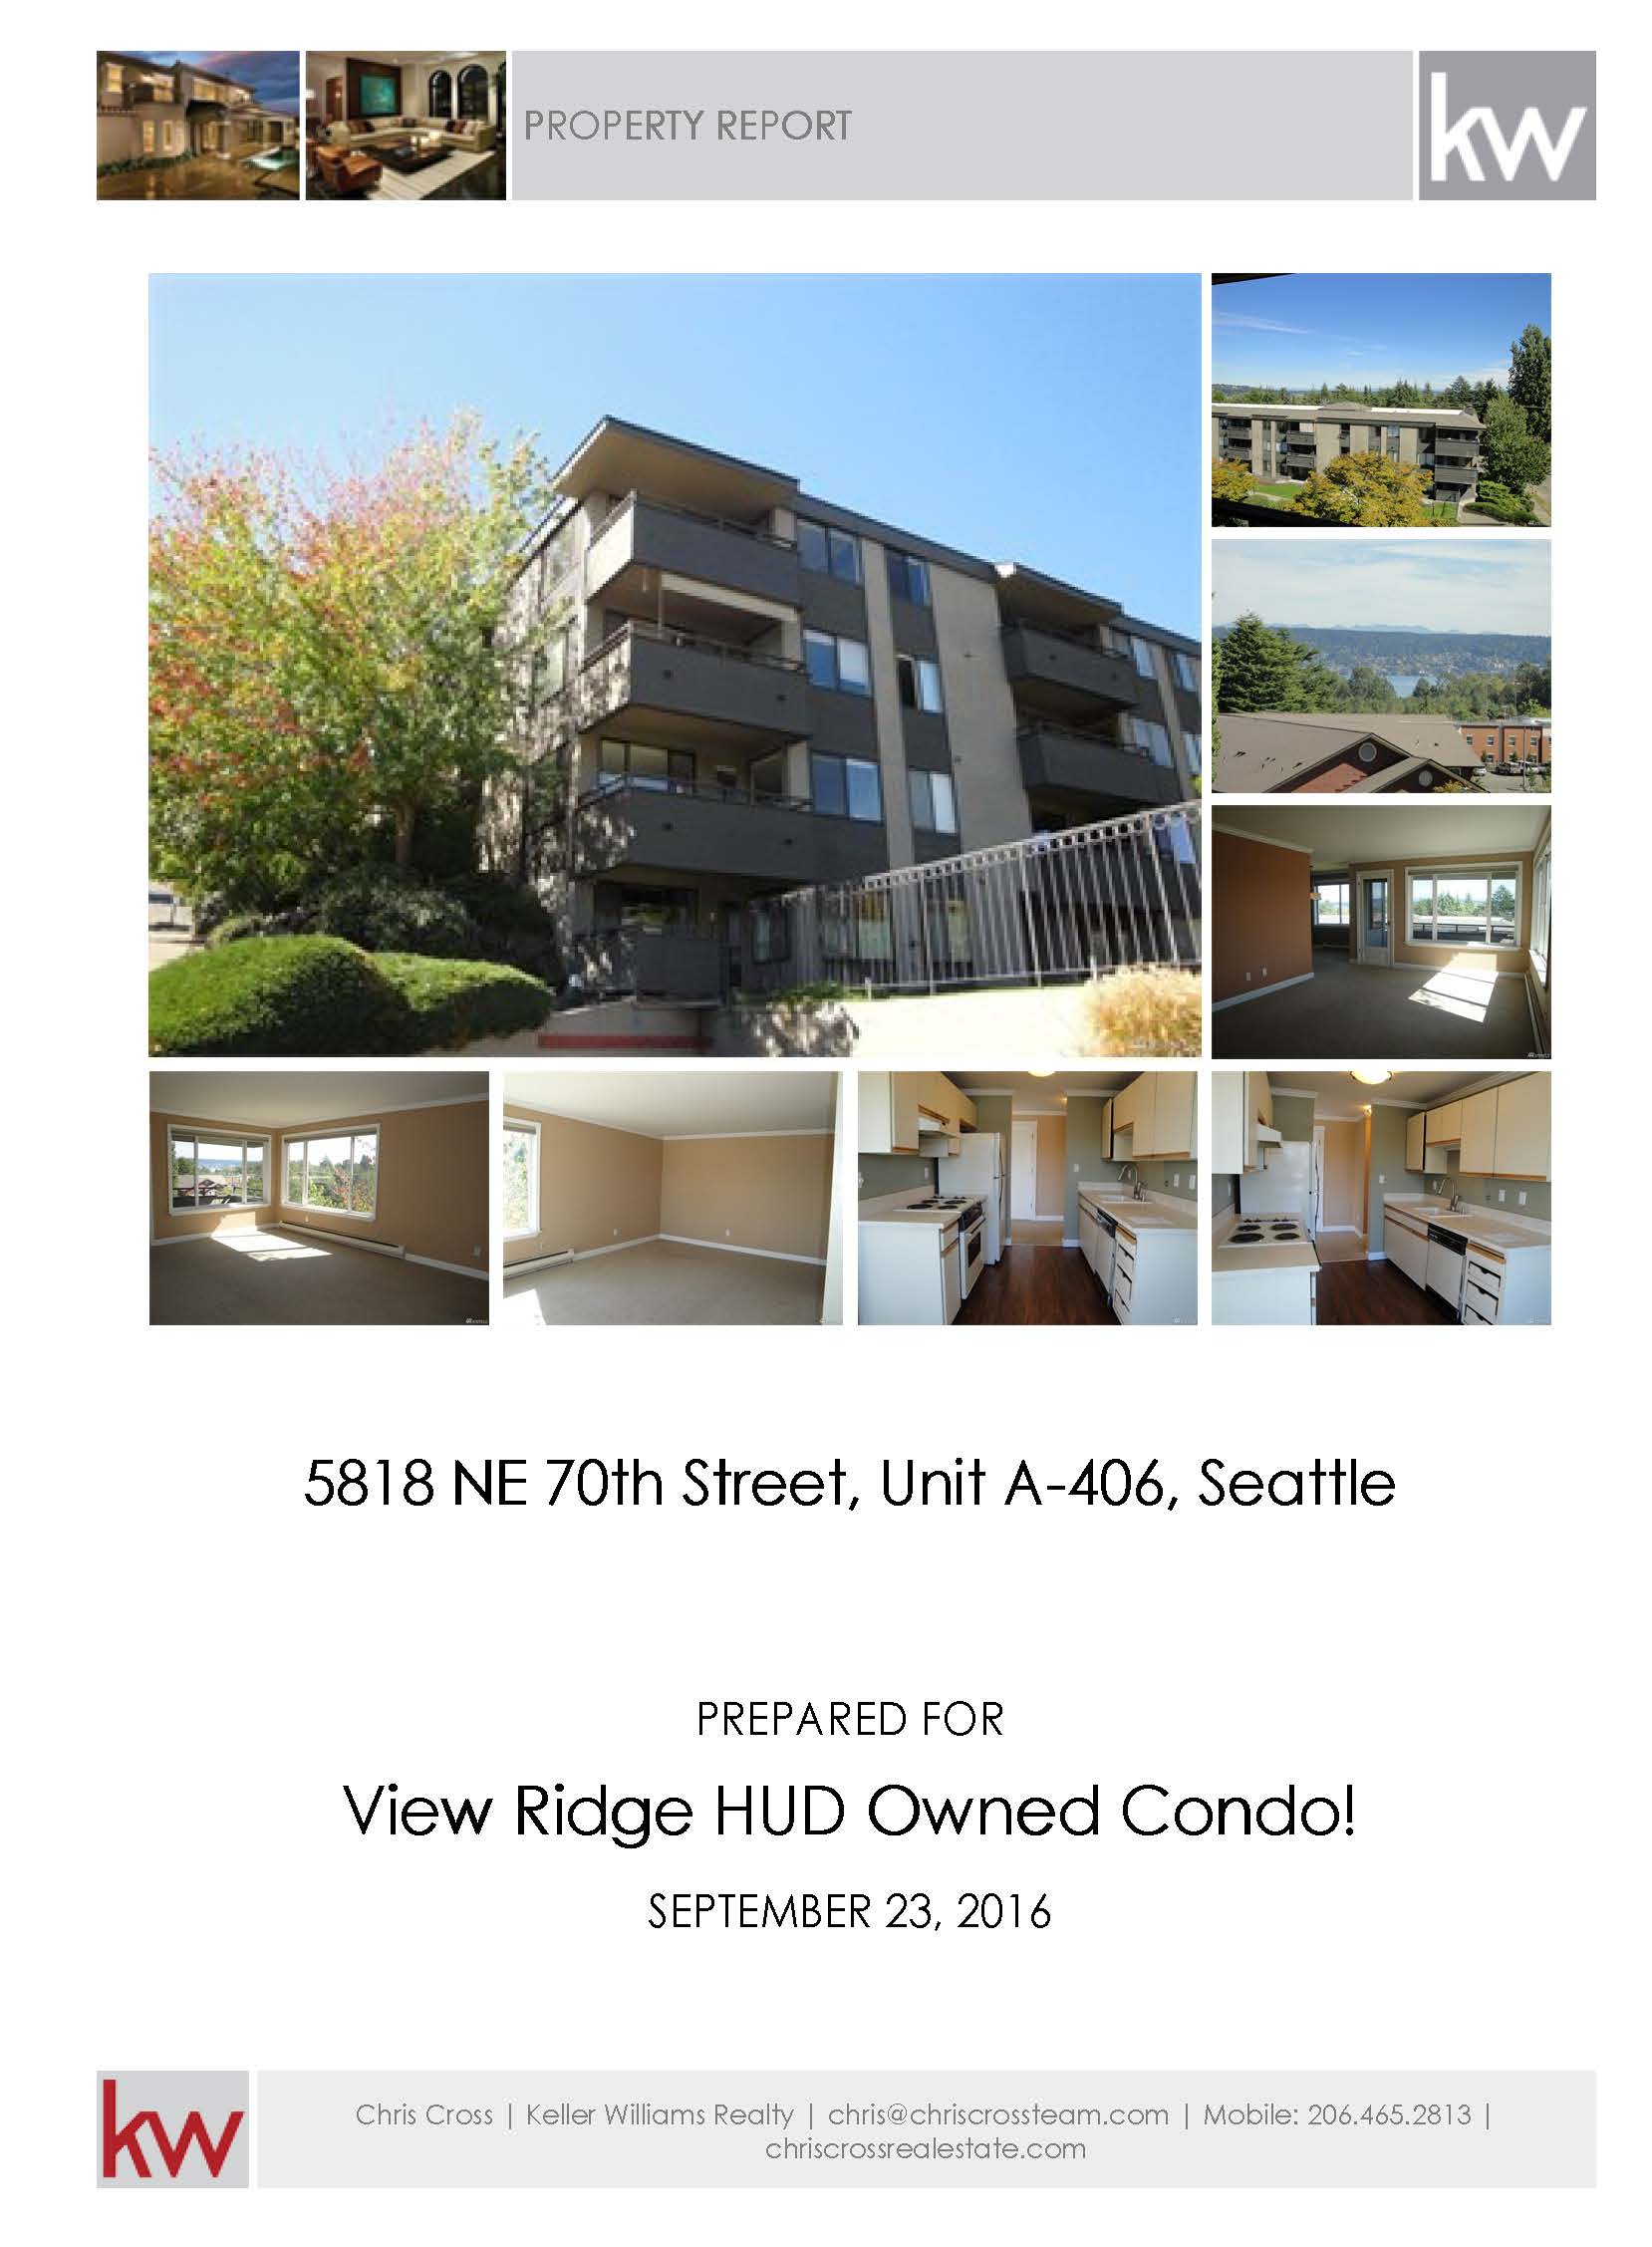 View Ridge Condo Property Report JPG_Page_01.jpg